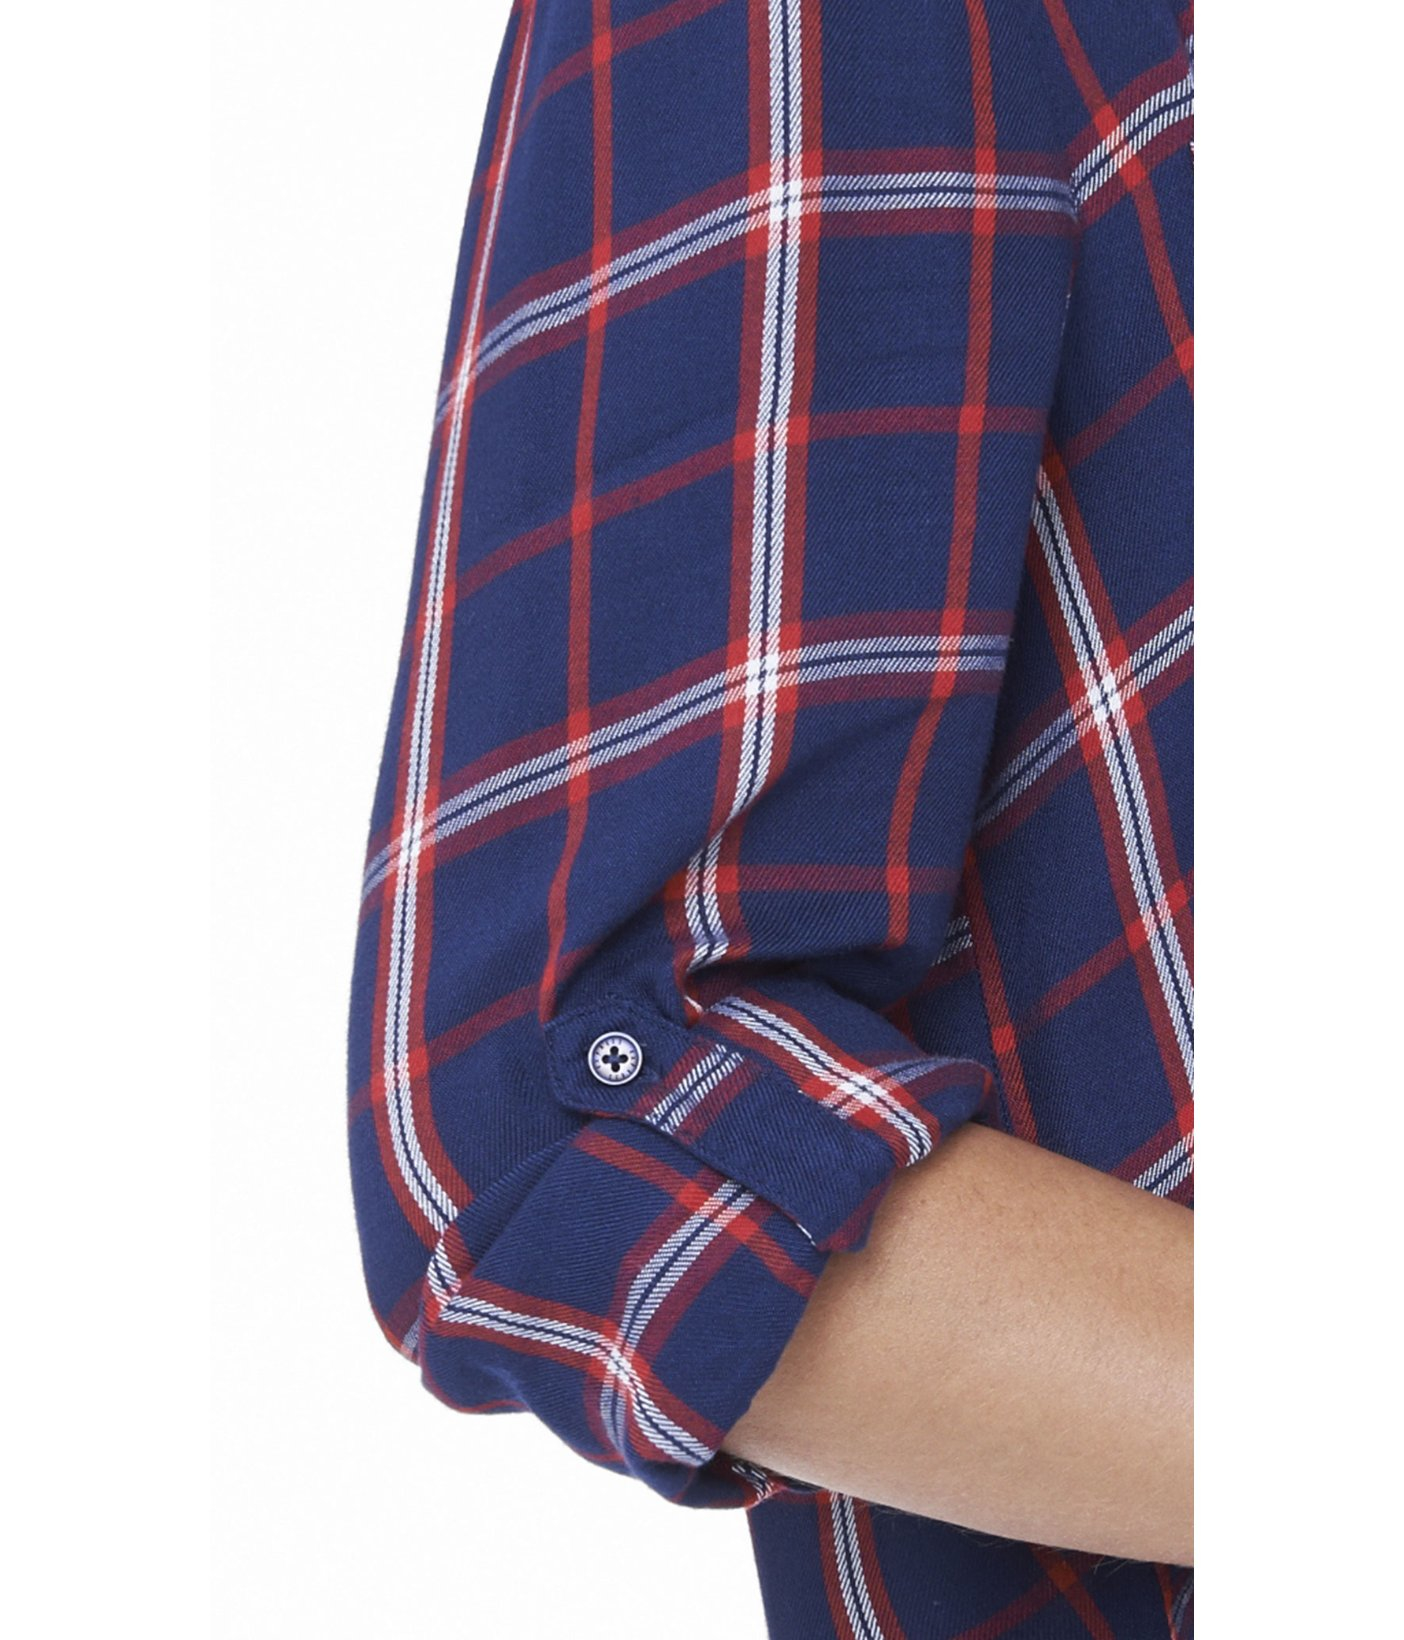 Men's Plaid Shirt Collection at Old Navy The timeless plaid pattern has been a part of fashion for decades. Old Navy builds on this rich, historical print by adding cool, trendy design and flattering tailoring.